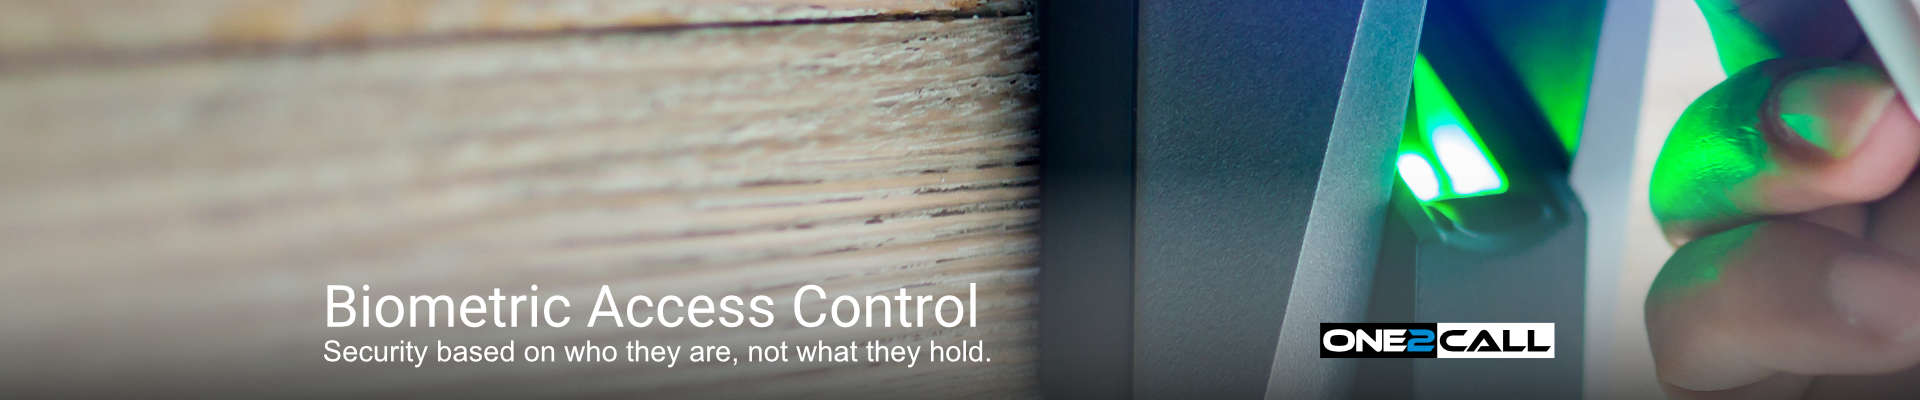 Biometric Access Control - Security based on who they are, not what they hold.